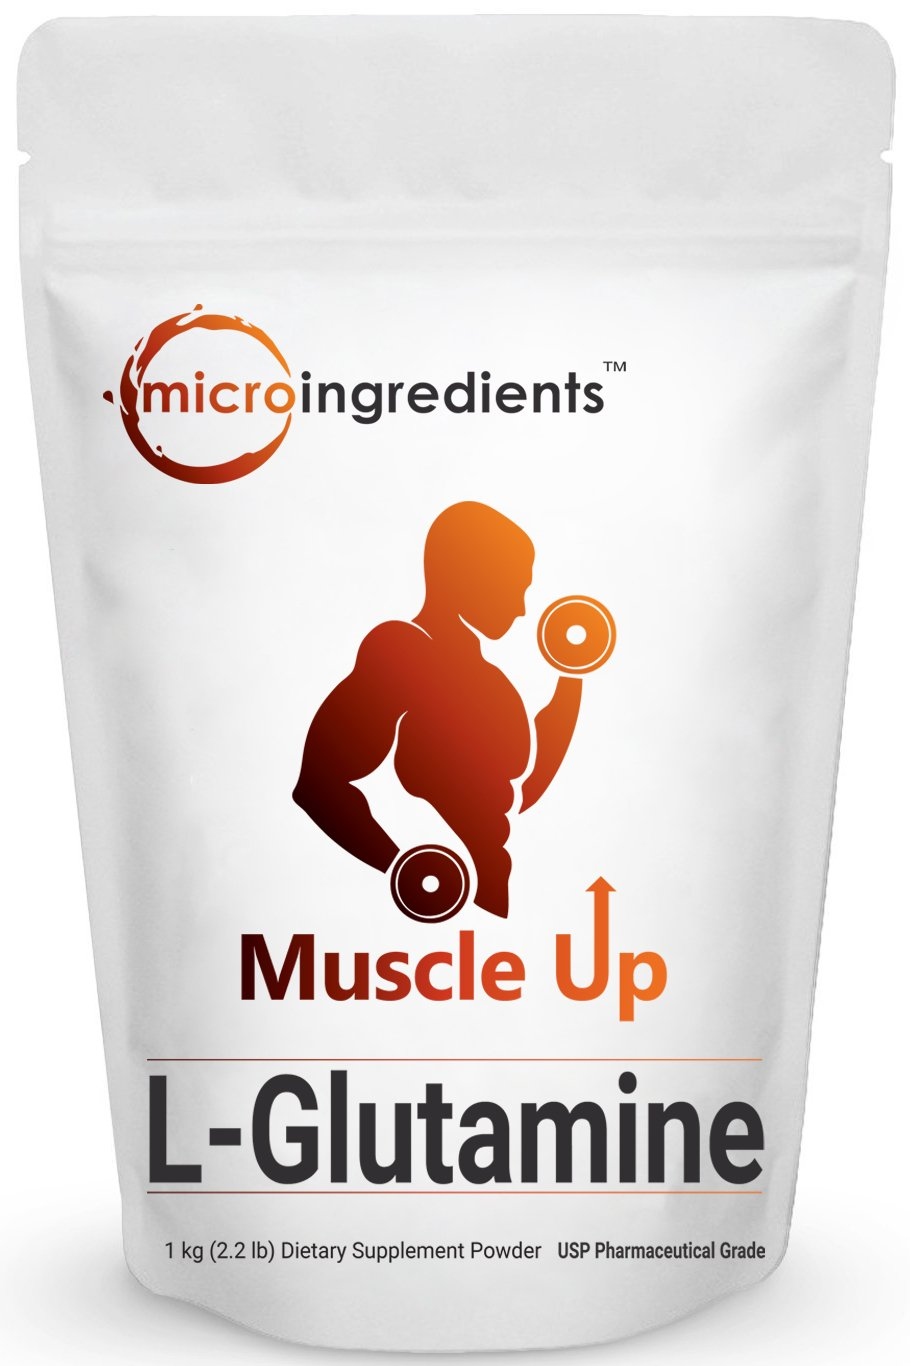 Pure Vegan L Glutamine Powder, 1Kg (2.2 Pounds), Strongly Supports Muscle Mass, Recovery, Protein Synthesis and Muscle Build Up, Sports Nutrition Supplements, No GMOs and Gluten Free. by Micro Ingredients